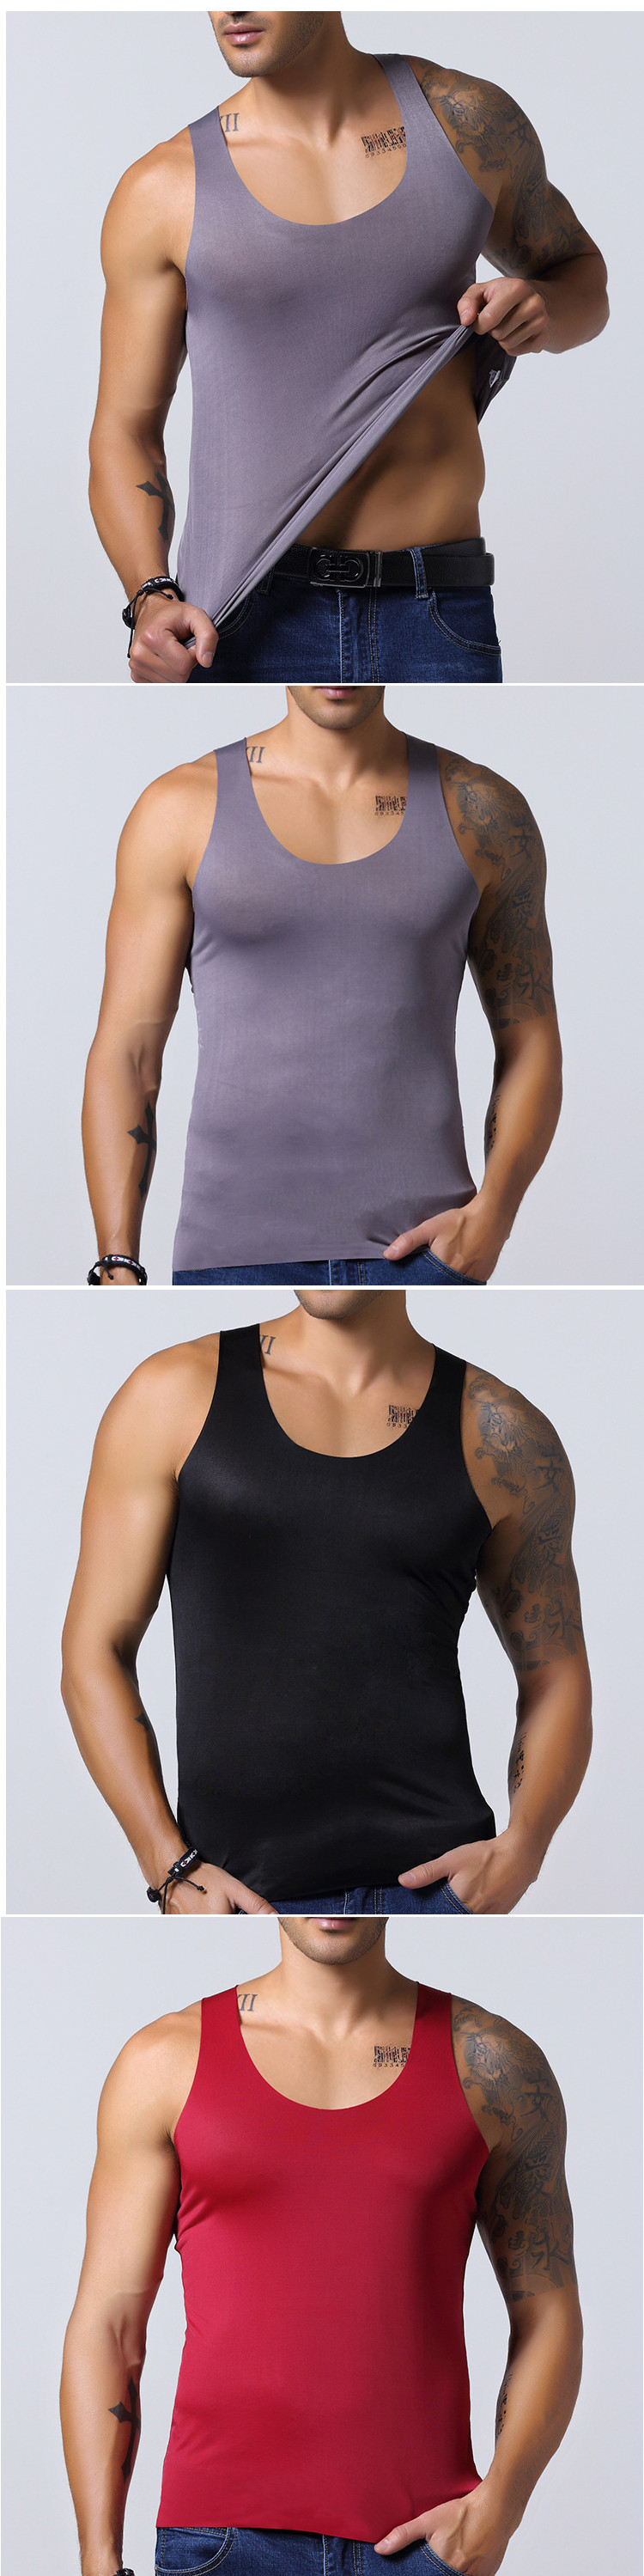 Men's Seamless Ice Silk Vest Leisure Solid Color Thin Elastic Fitness Sports Tanks Tops